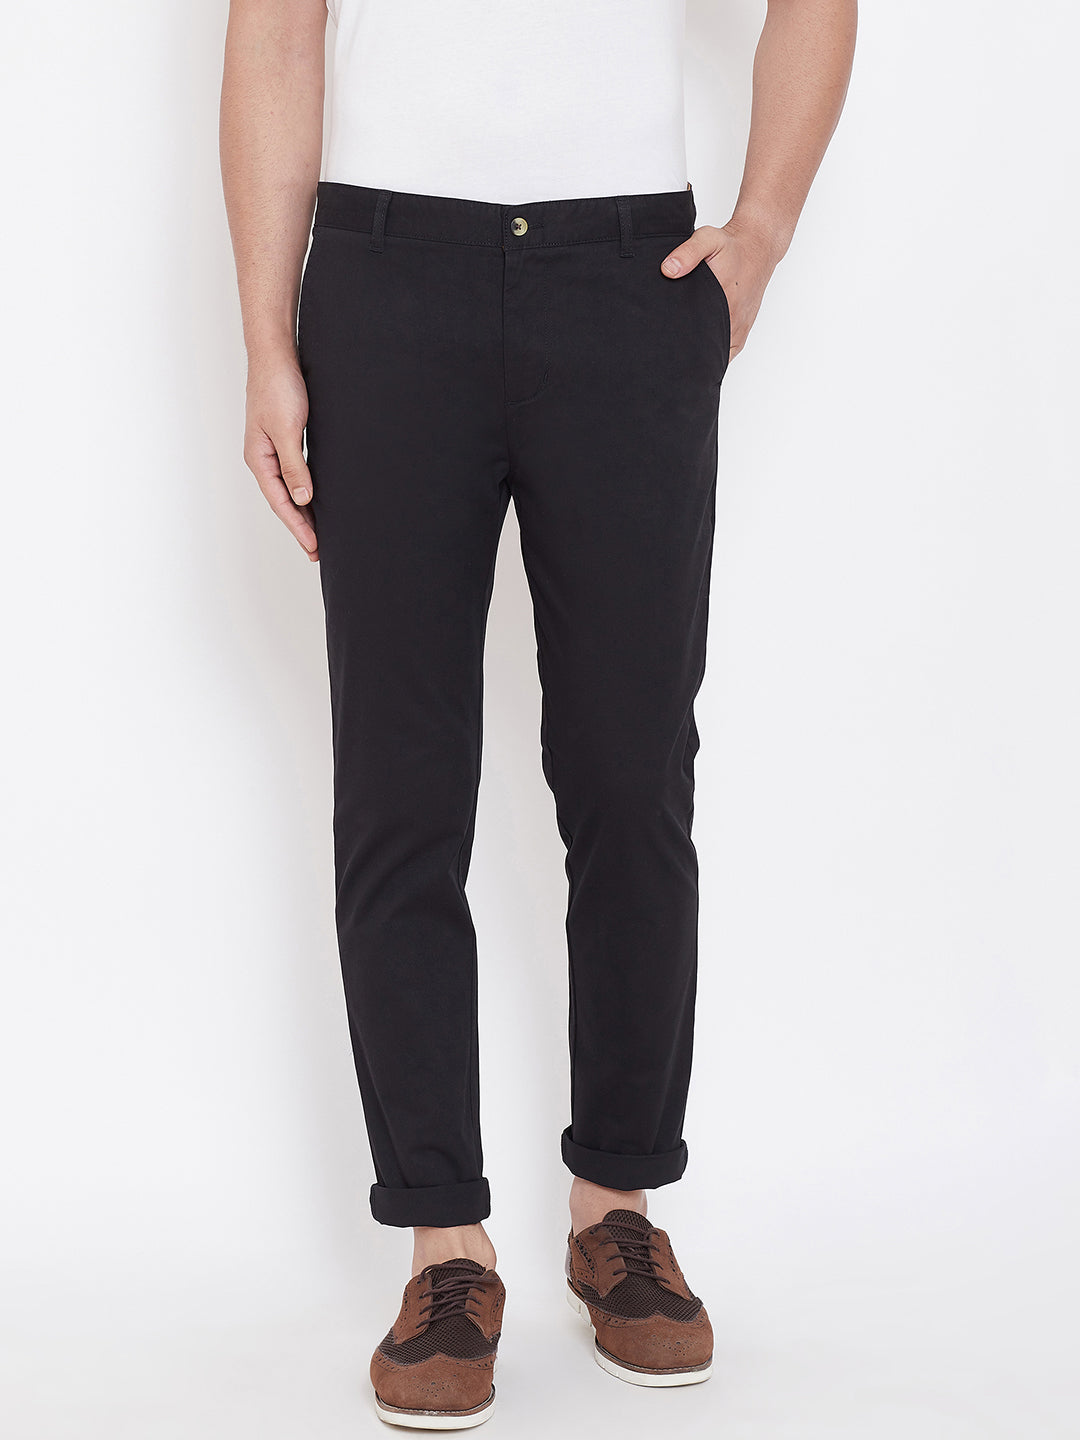 Men's Black Stretch Washed Casual Tailored Fit Chinos - JUMP USA